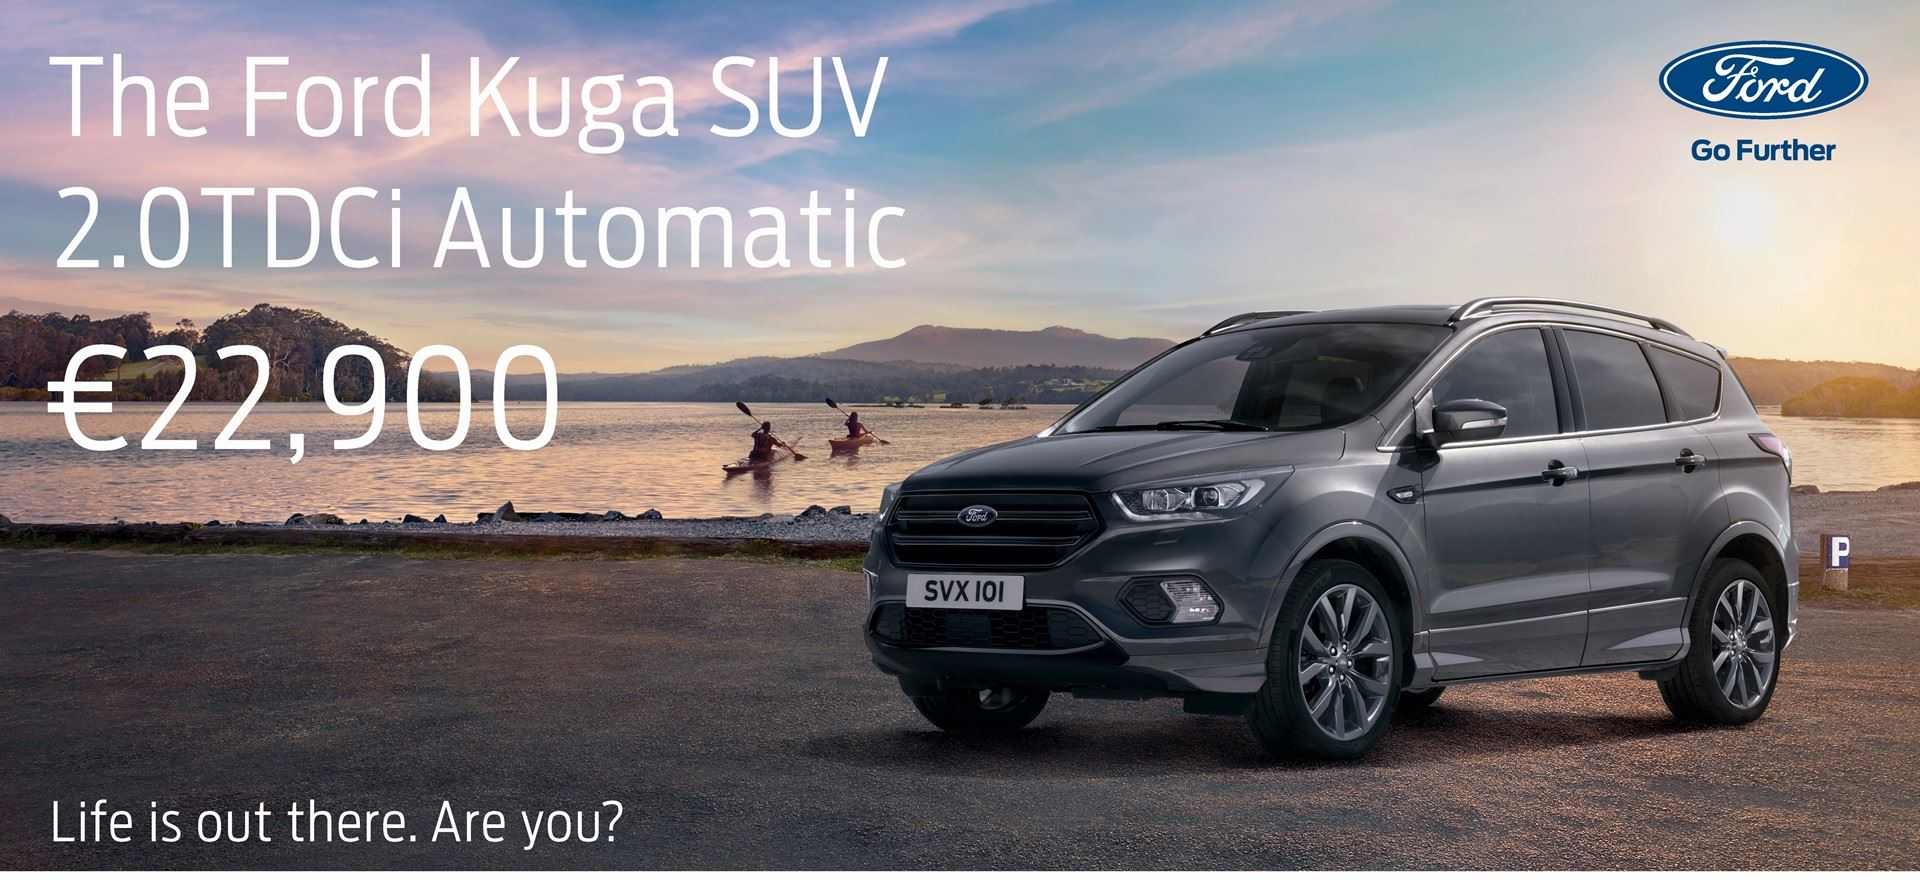 Ford Kuga 2.0TDCi Automatic Special Offer